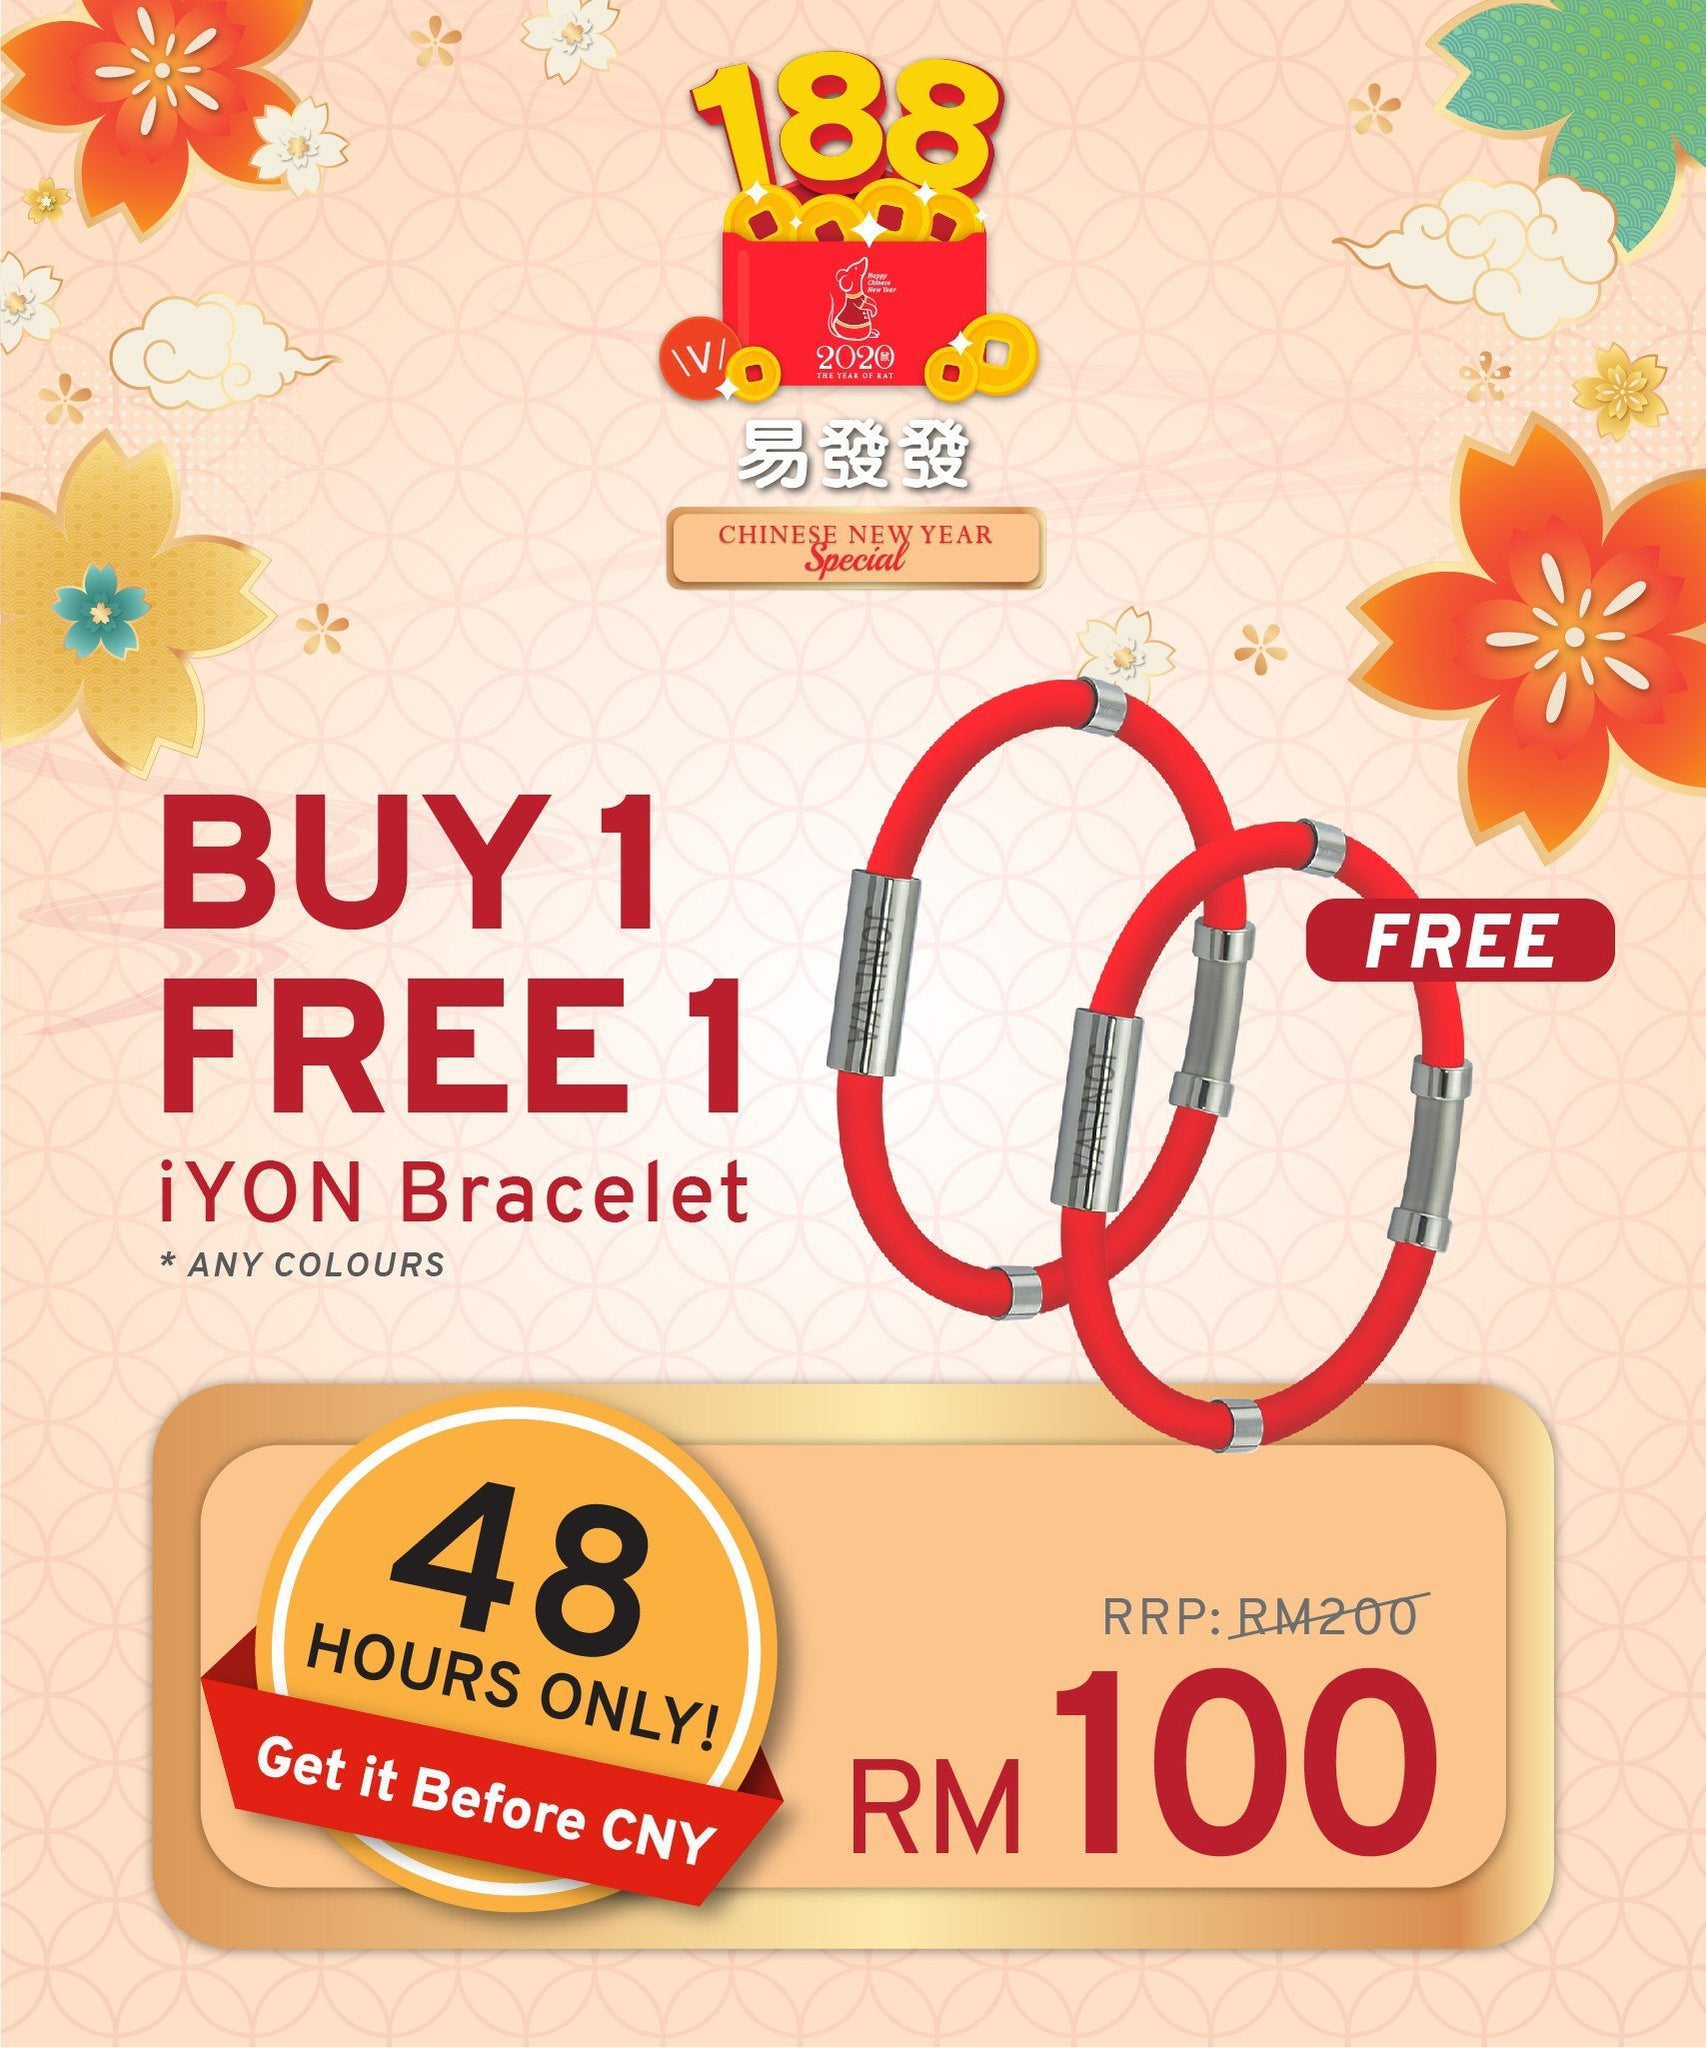 48 HOURS ONLY, BUY 1 FREE 1 iYON Bracelet - Get it Before CNY